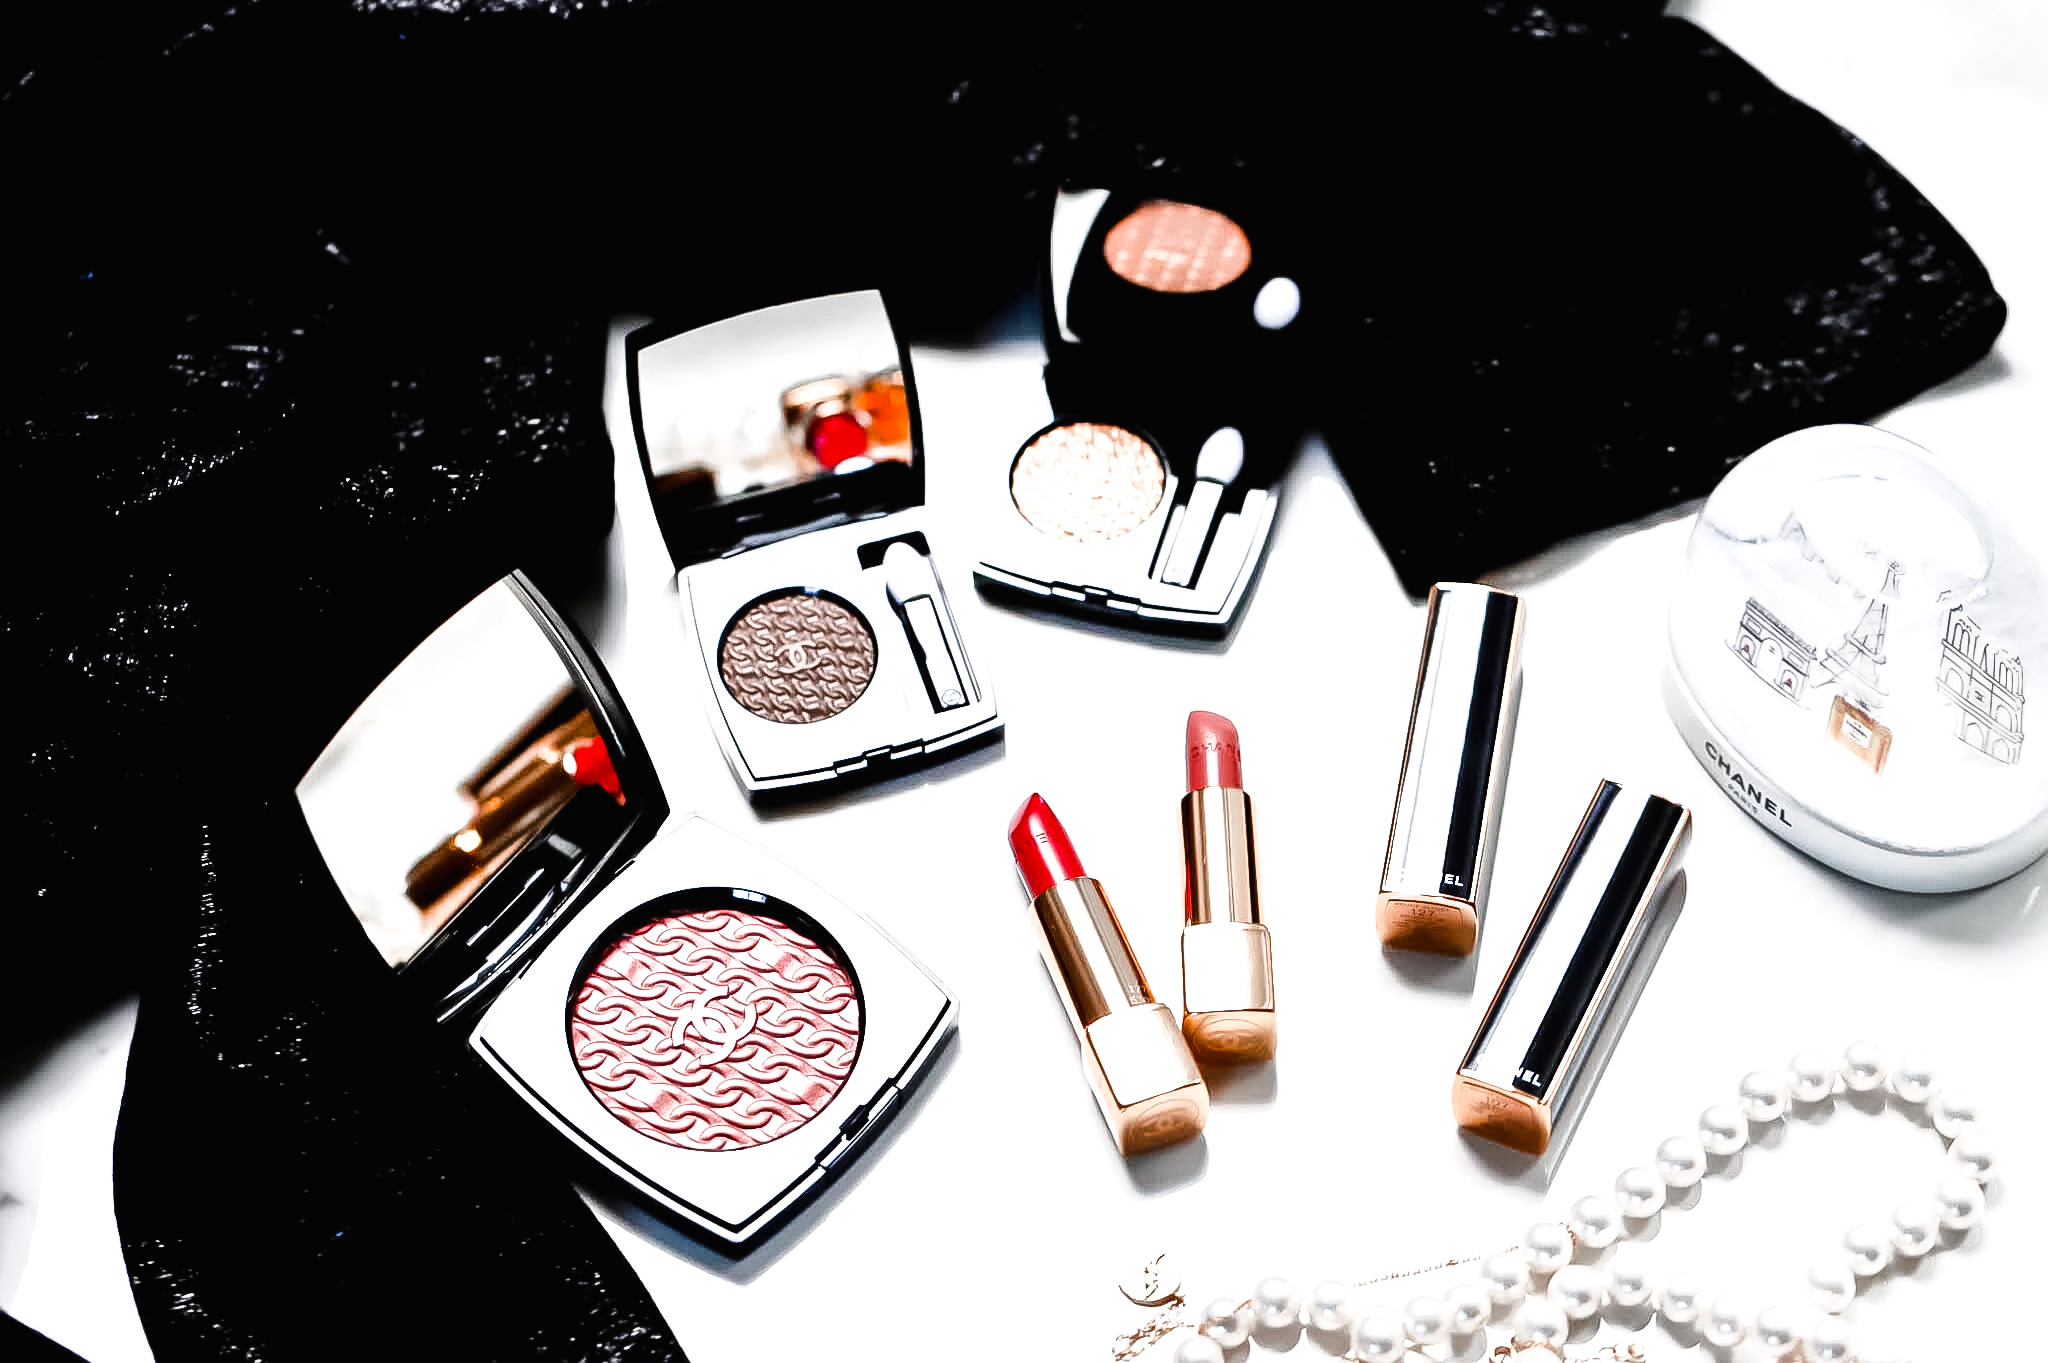 Chanel Collection Maquillage Chaînes d'Or Noël 2020